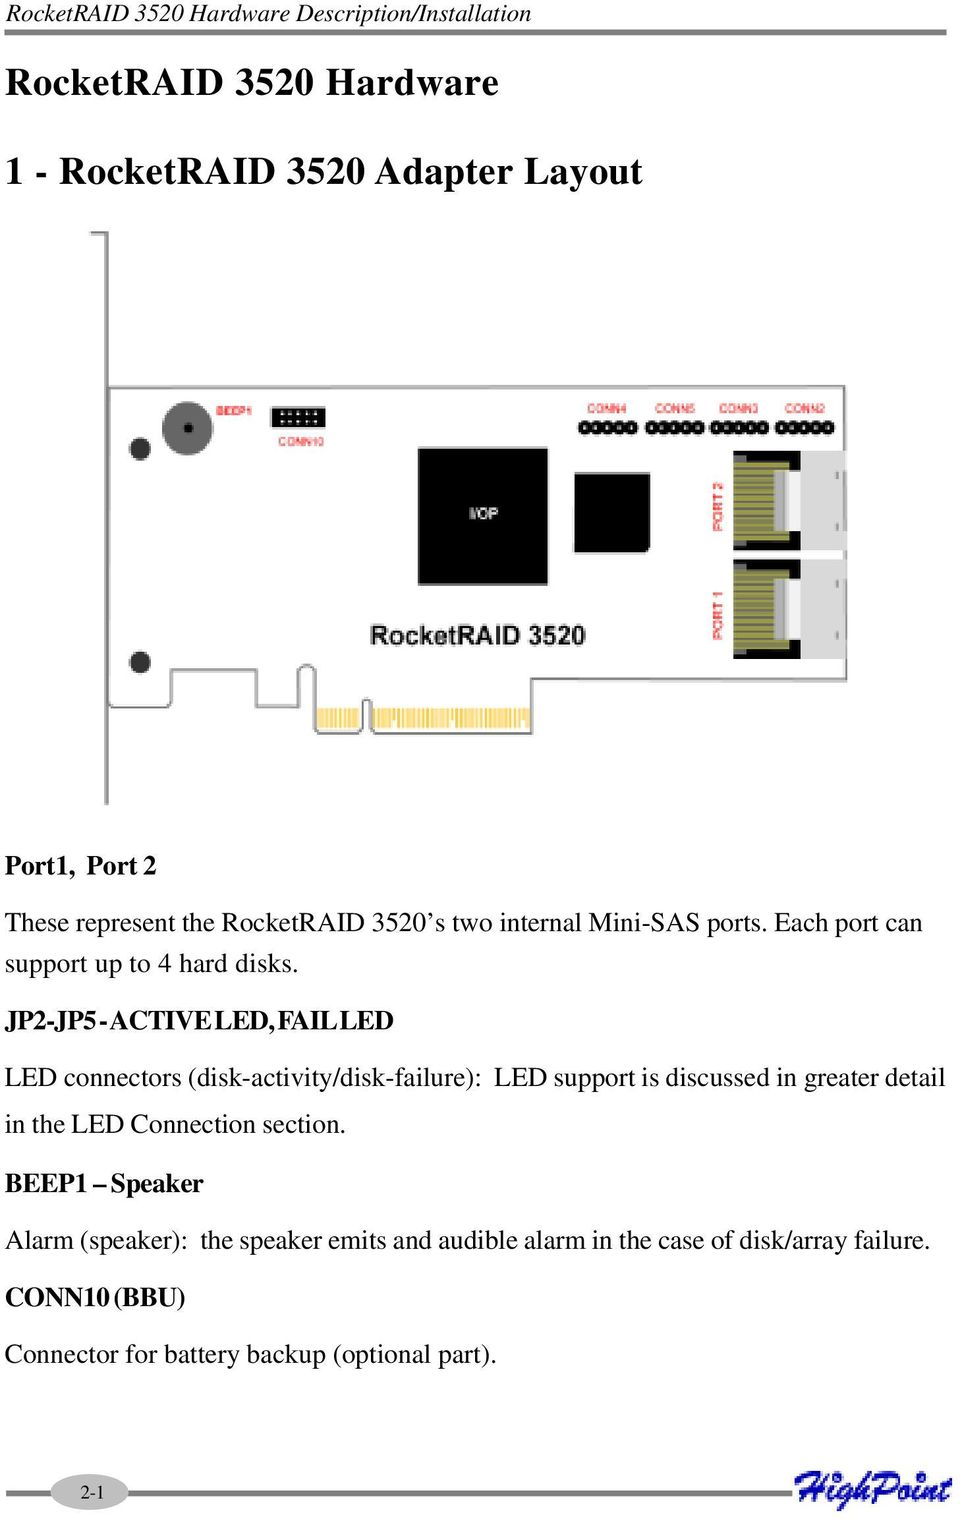 JP2-JP5 - ACTIVE LED, FAIL LED LED connectors (disk-activity/disk-failure): LED support is discussed in greater detail in the LED